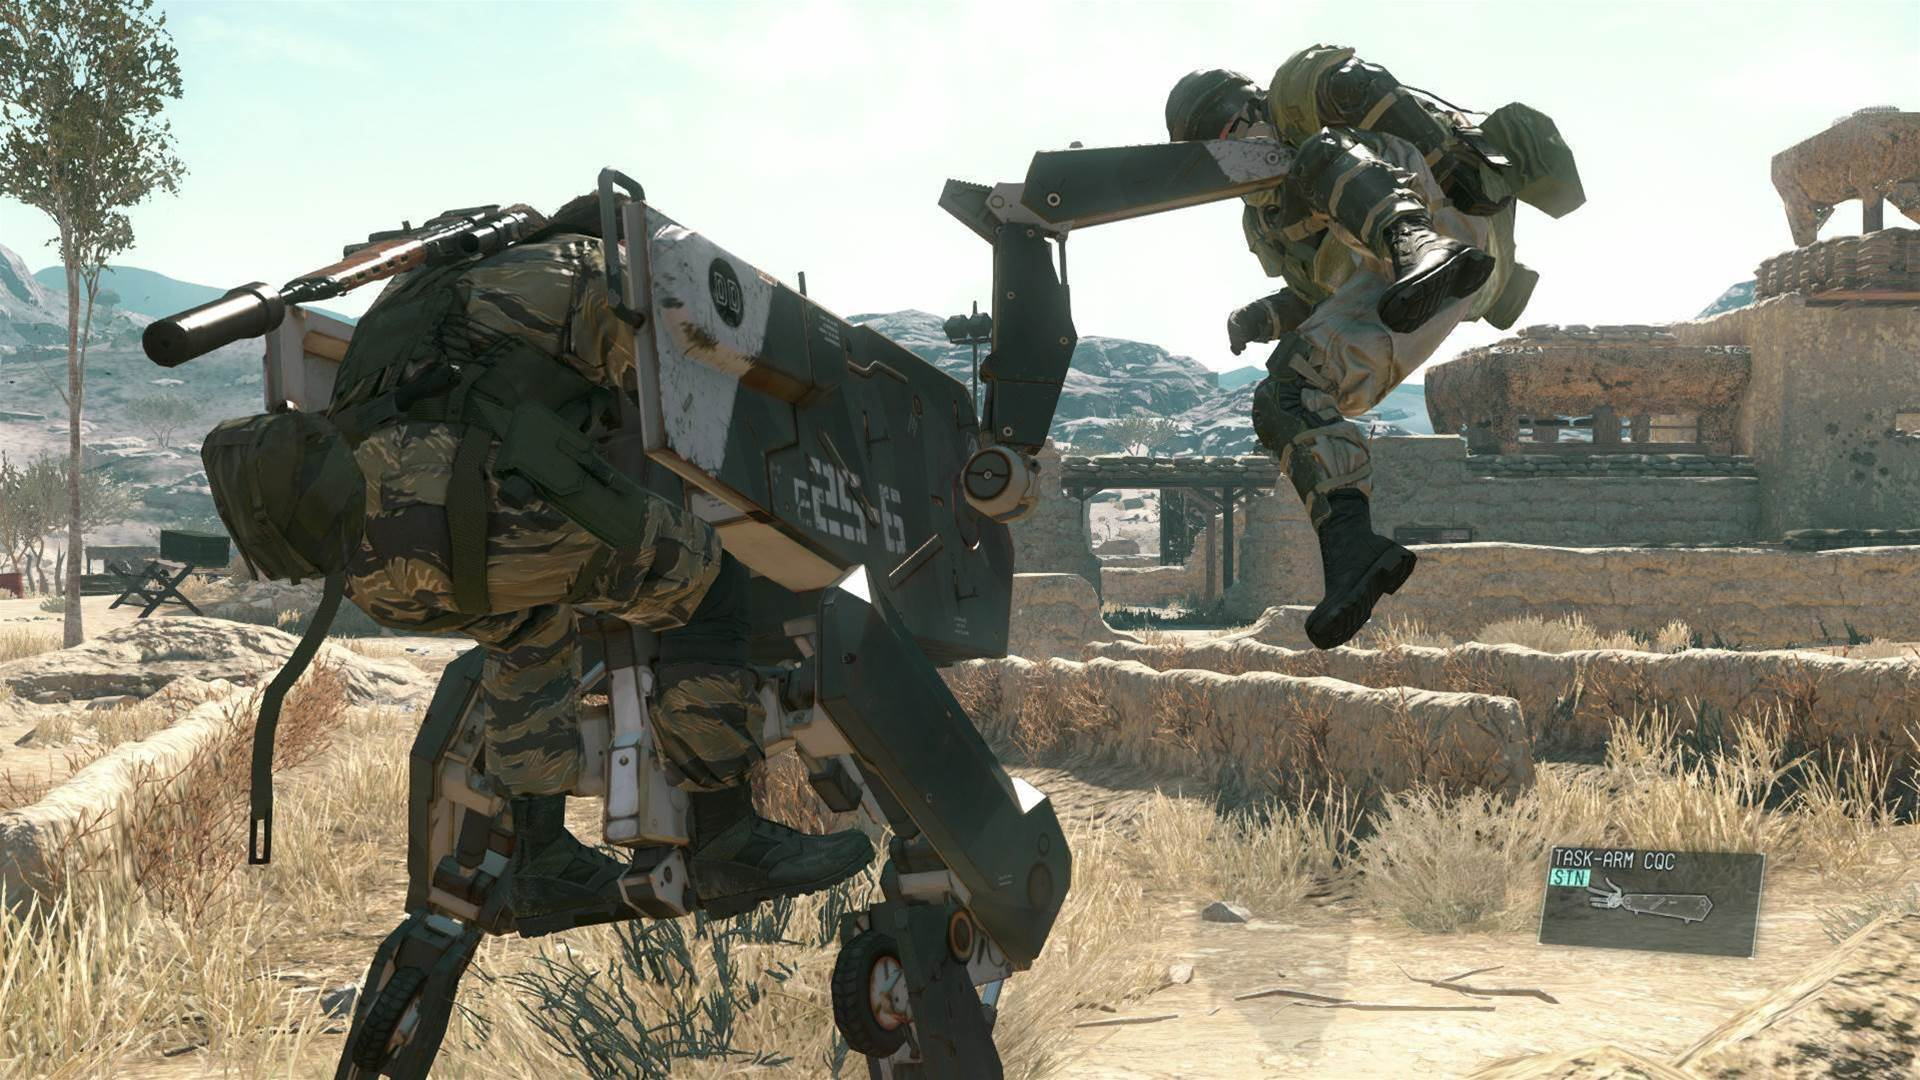 PlayStation Plus October games include MGS5, Amnesia